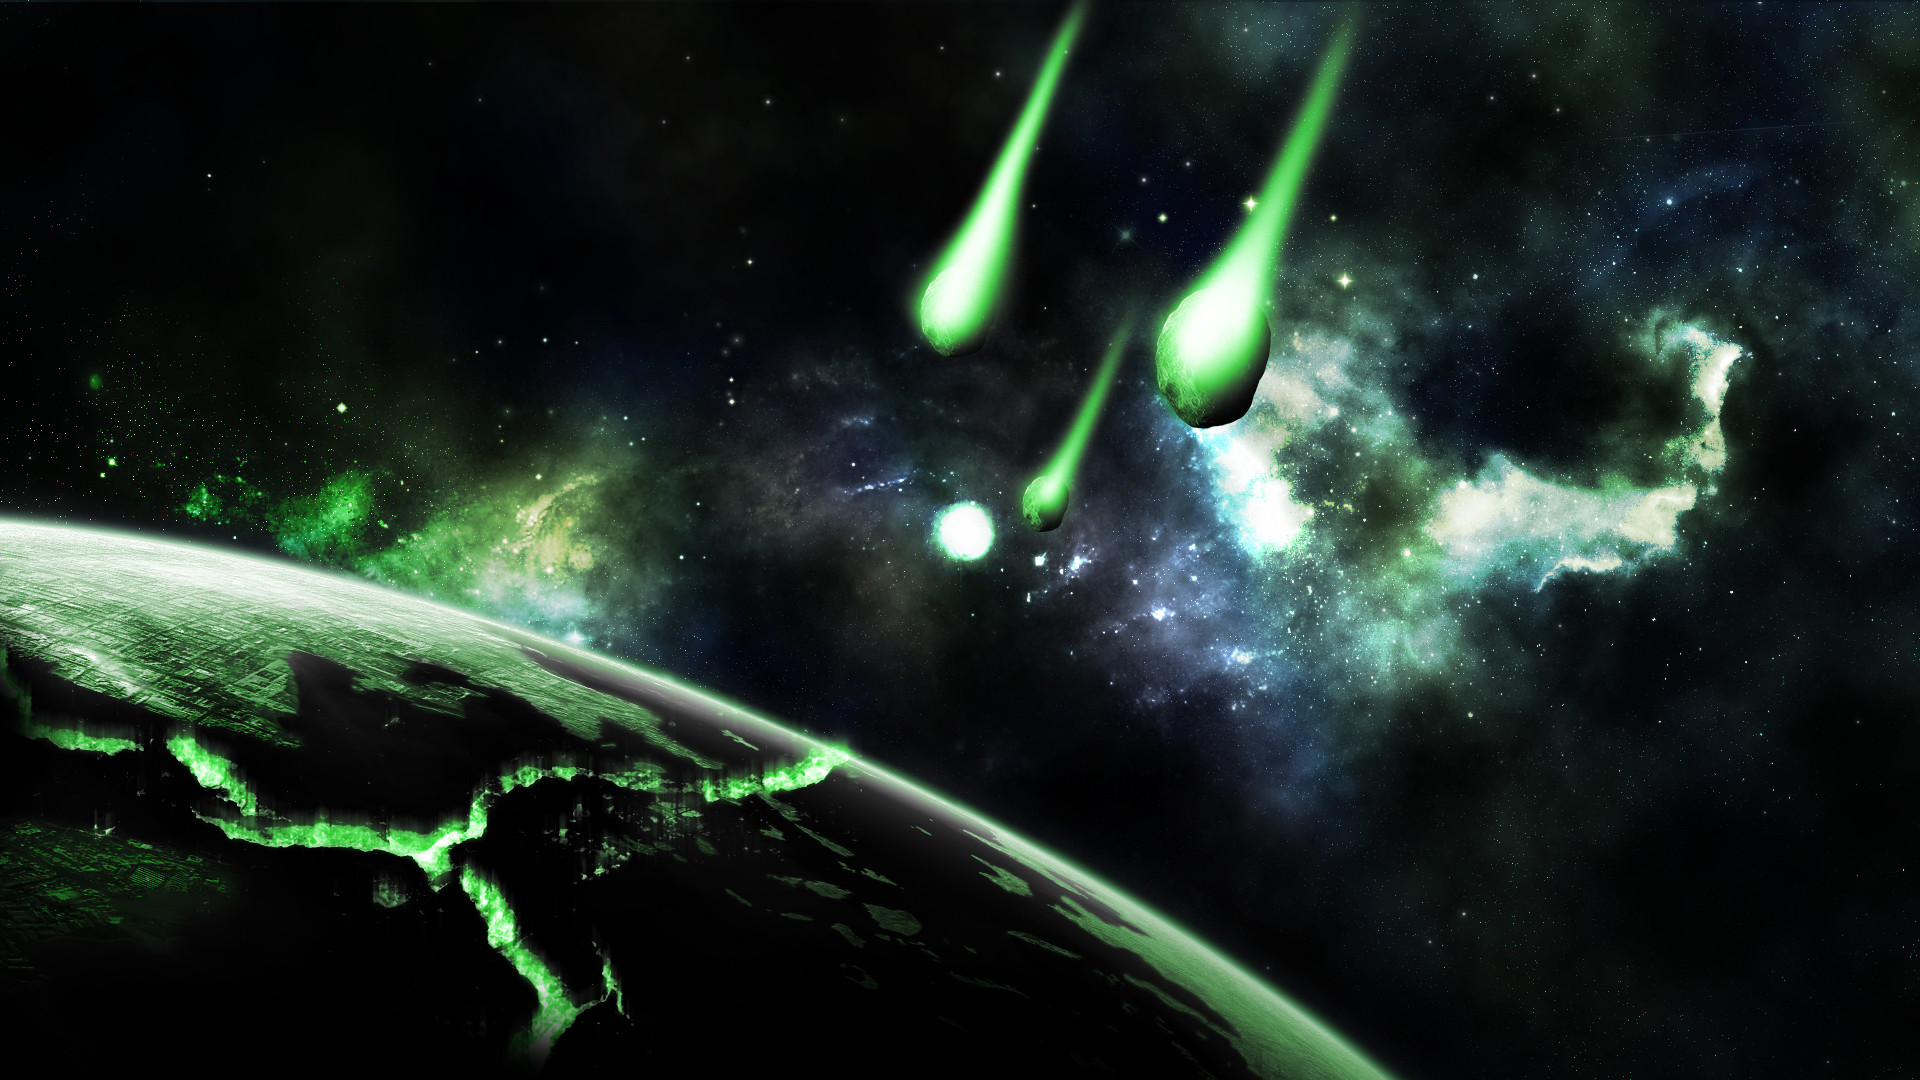 … Green and Deep Space (Wallpaper) by Hardii